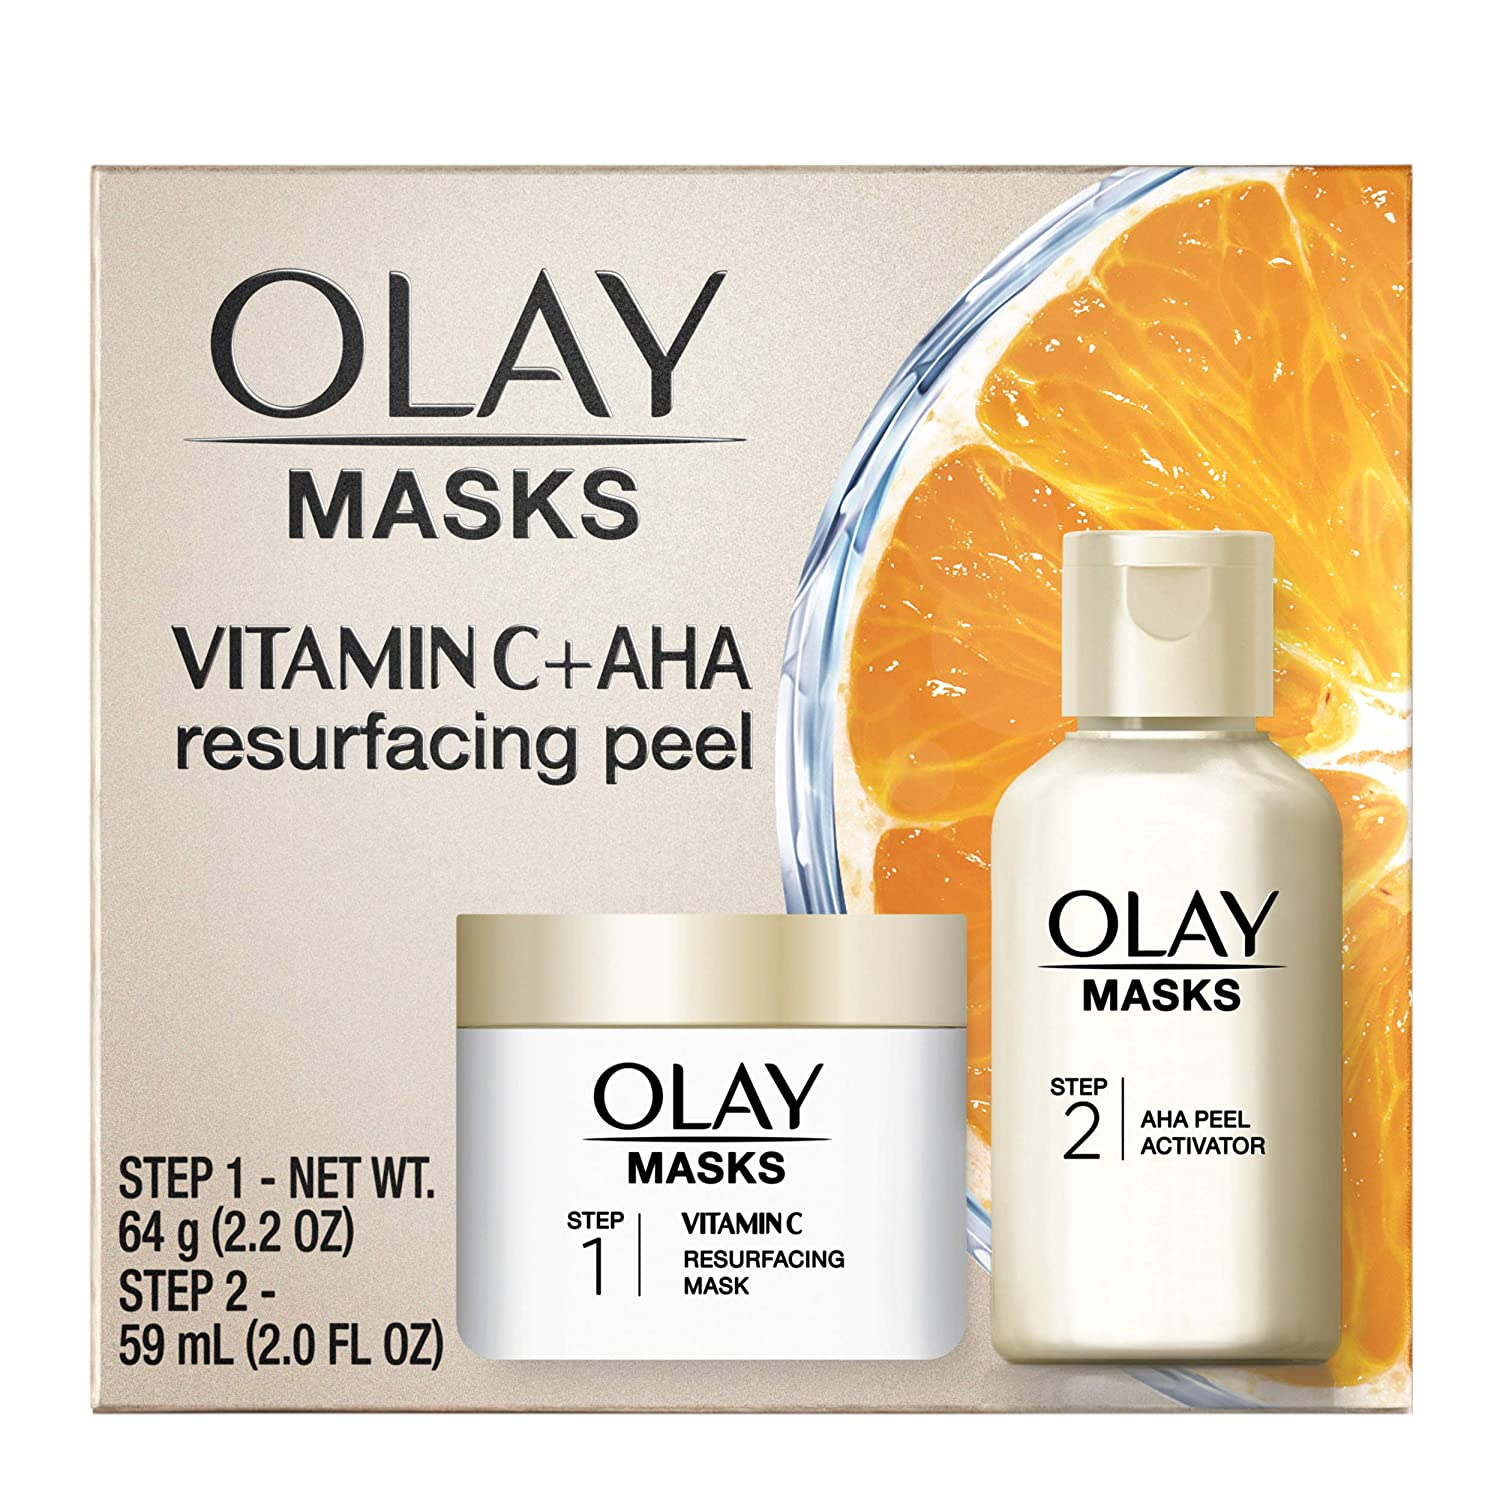 Olay Vitamin C Face Mask Kit, Exfoliator Kit with Mask, Silica, Exfoliating Aha Peel, 0.47 Fl Oz